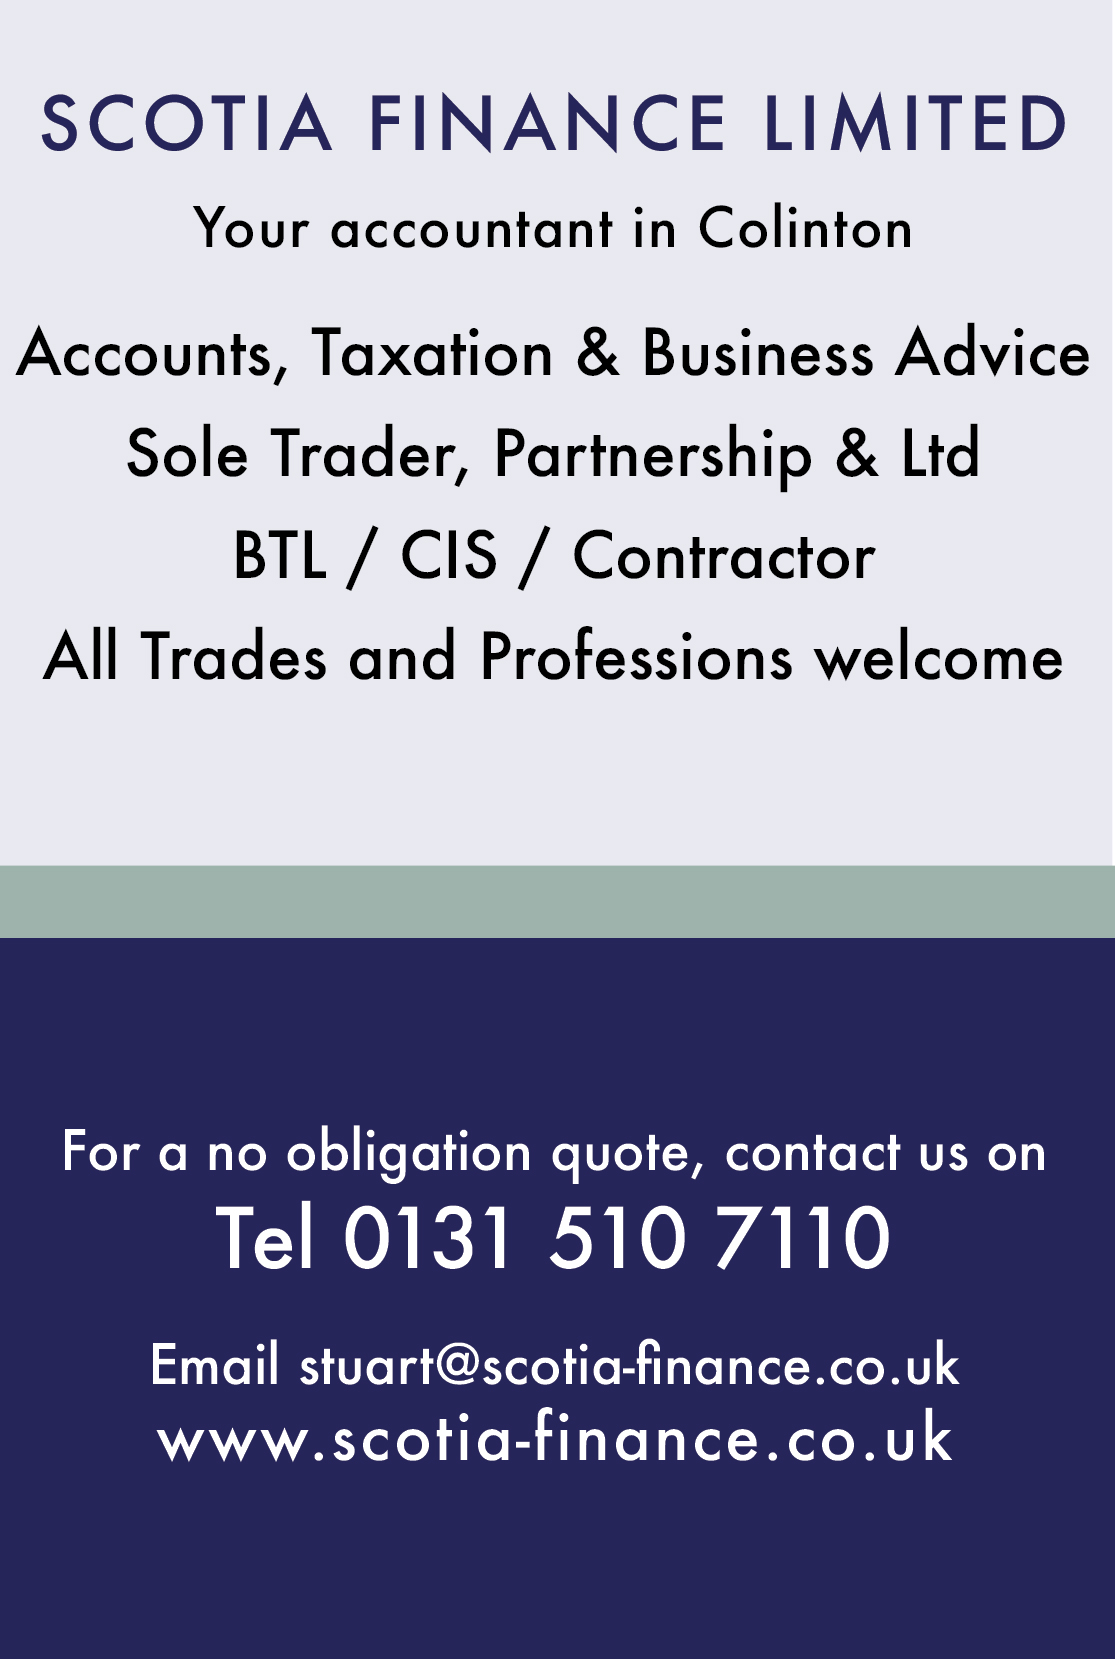 Scotia Finance Limited - your local accountant